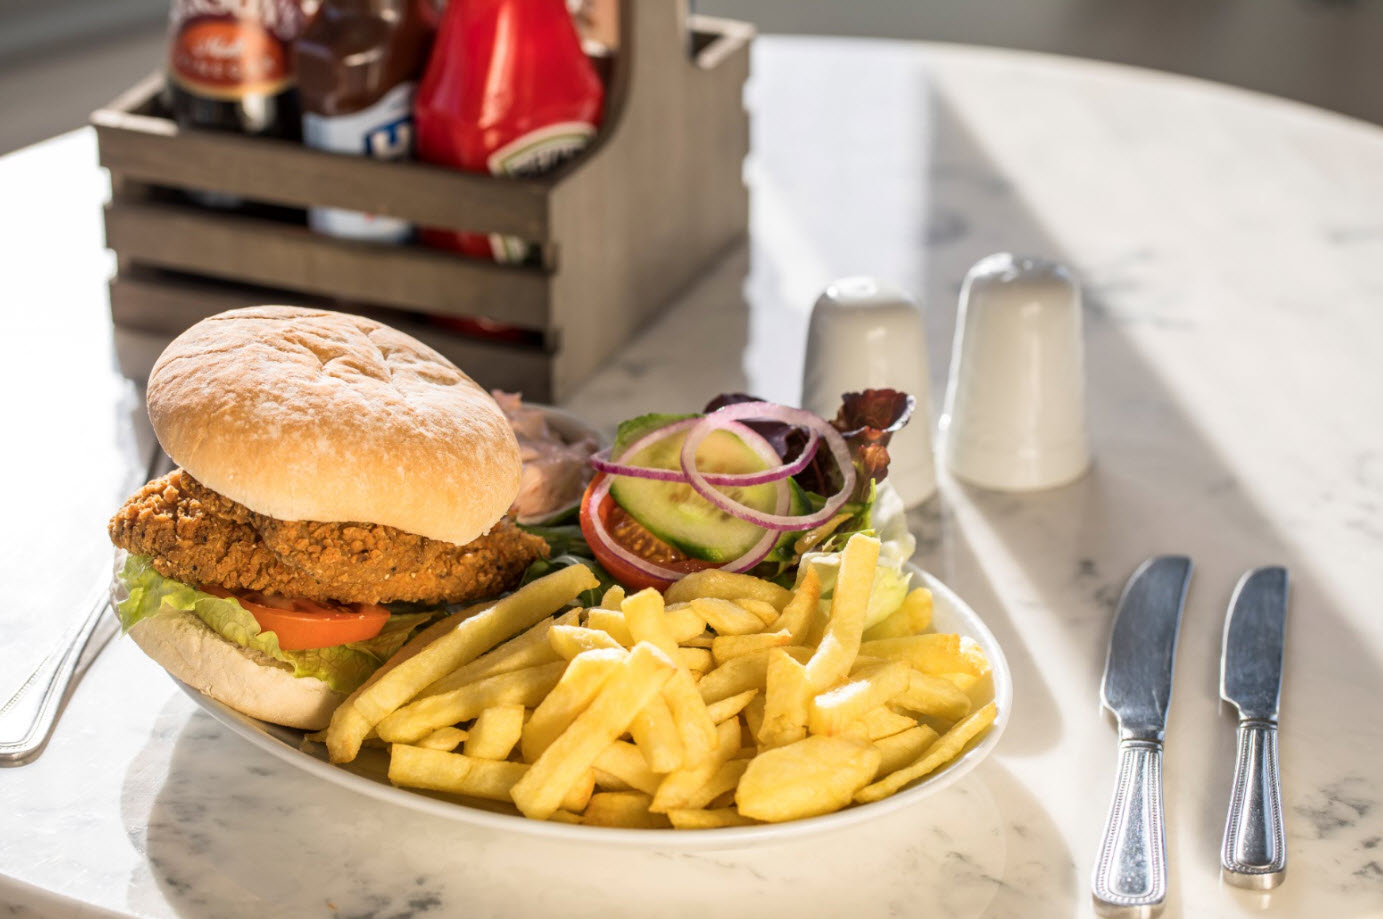 Southern Fried Chicken Burger at The Lobster Pot